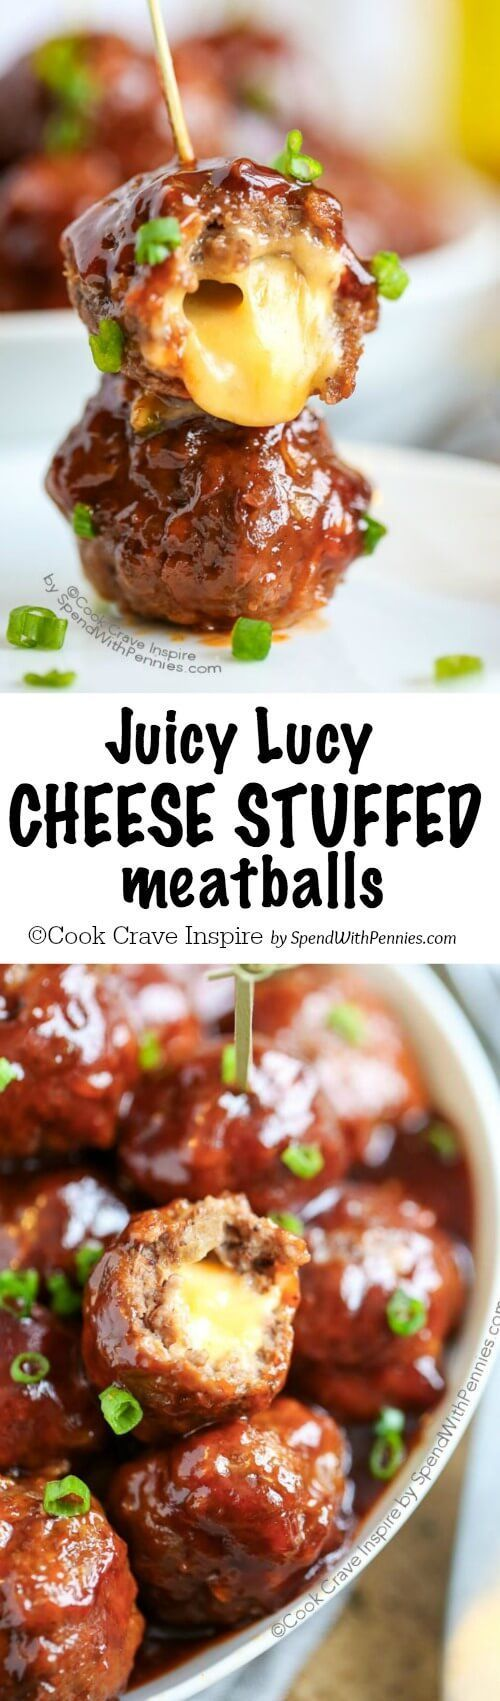 Juicy Lucy meatballs! These are of of my favorite game day appetizers! Gooey cheese is stuffed inside a tender beef meatball and bathed in a spicy sweet sauce!